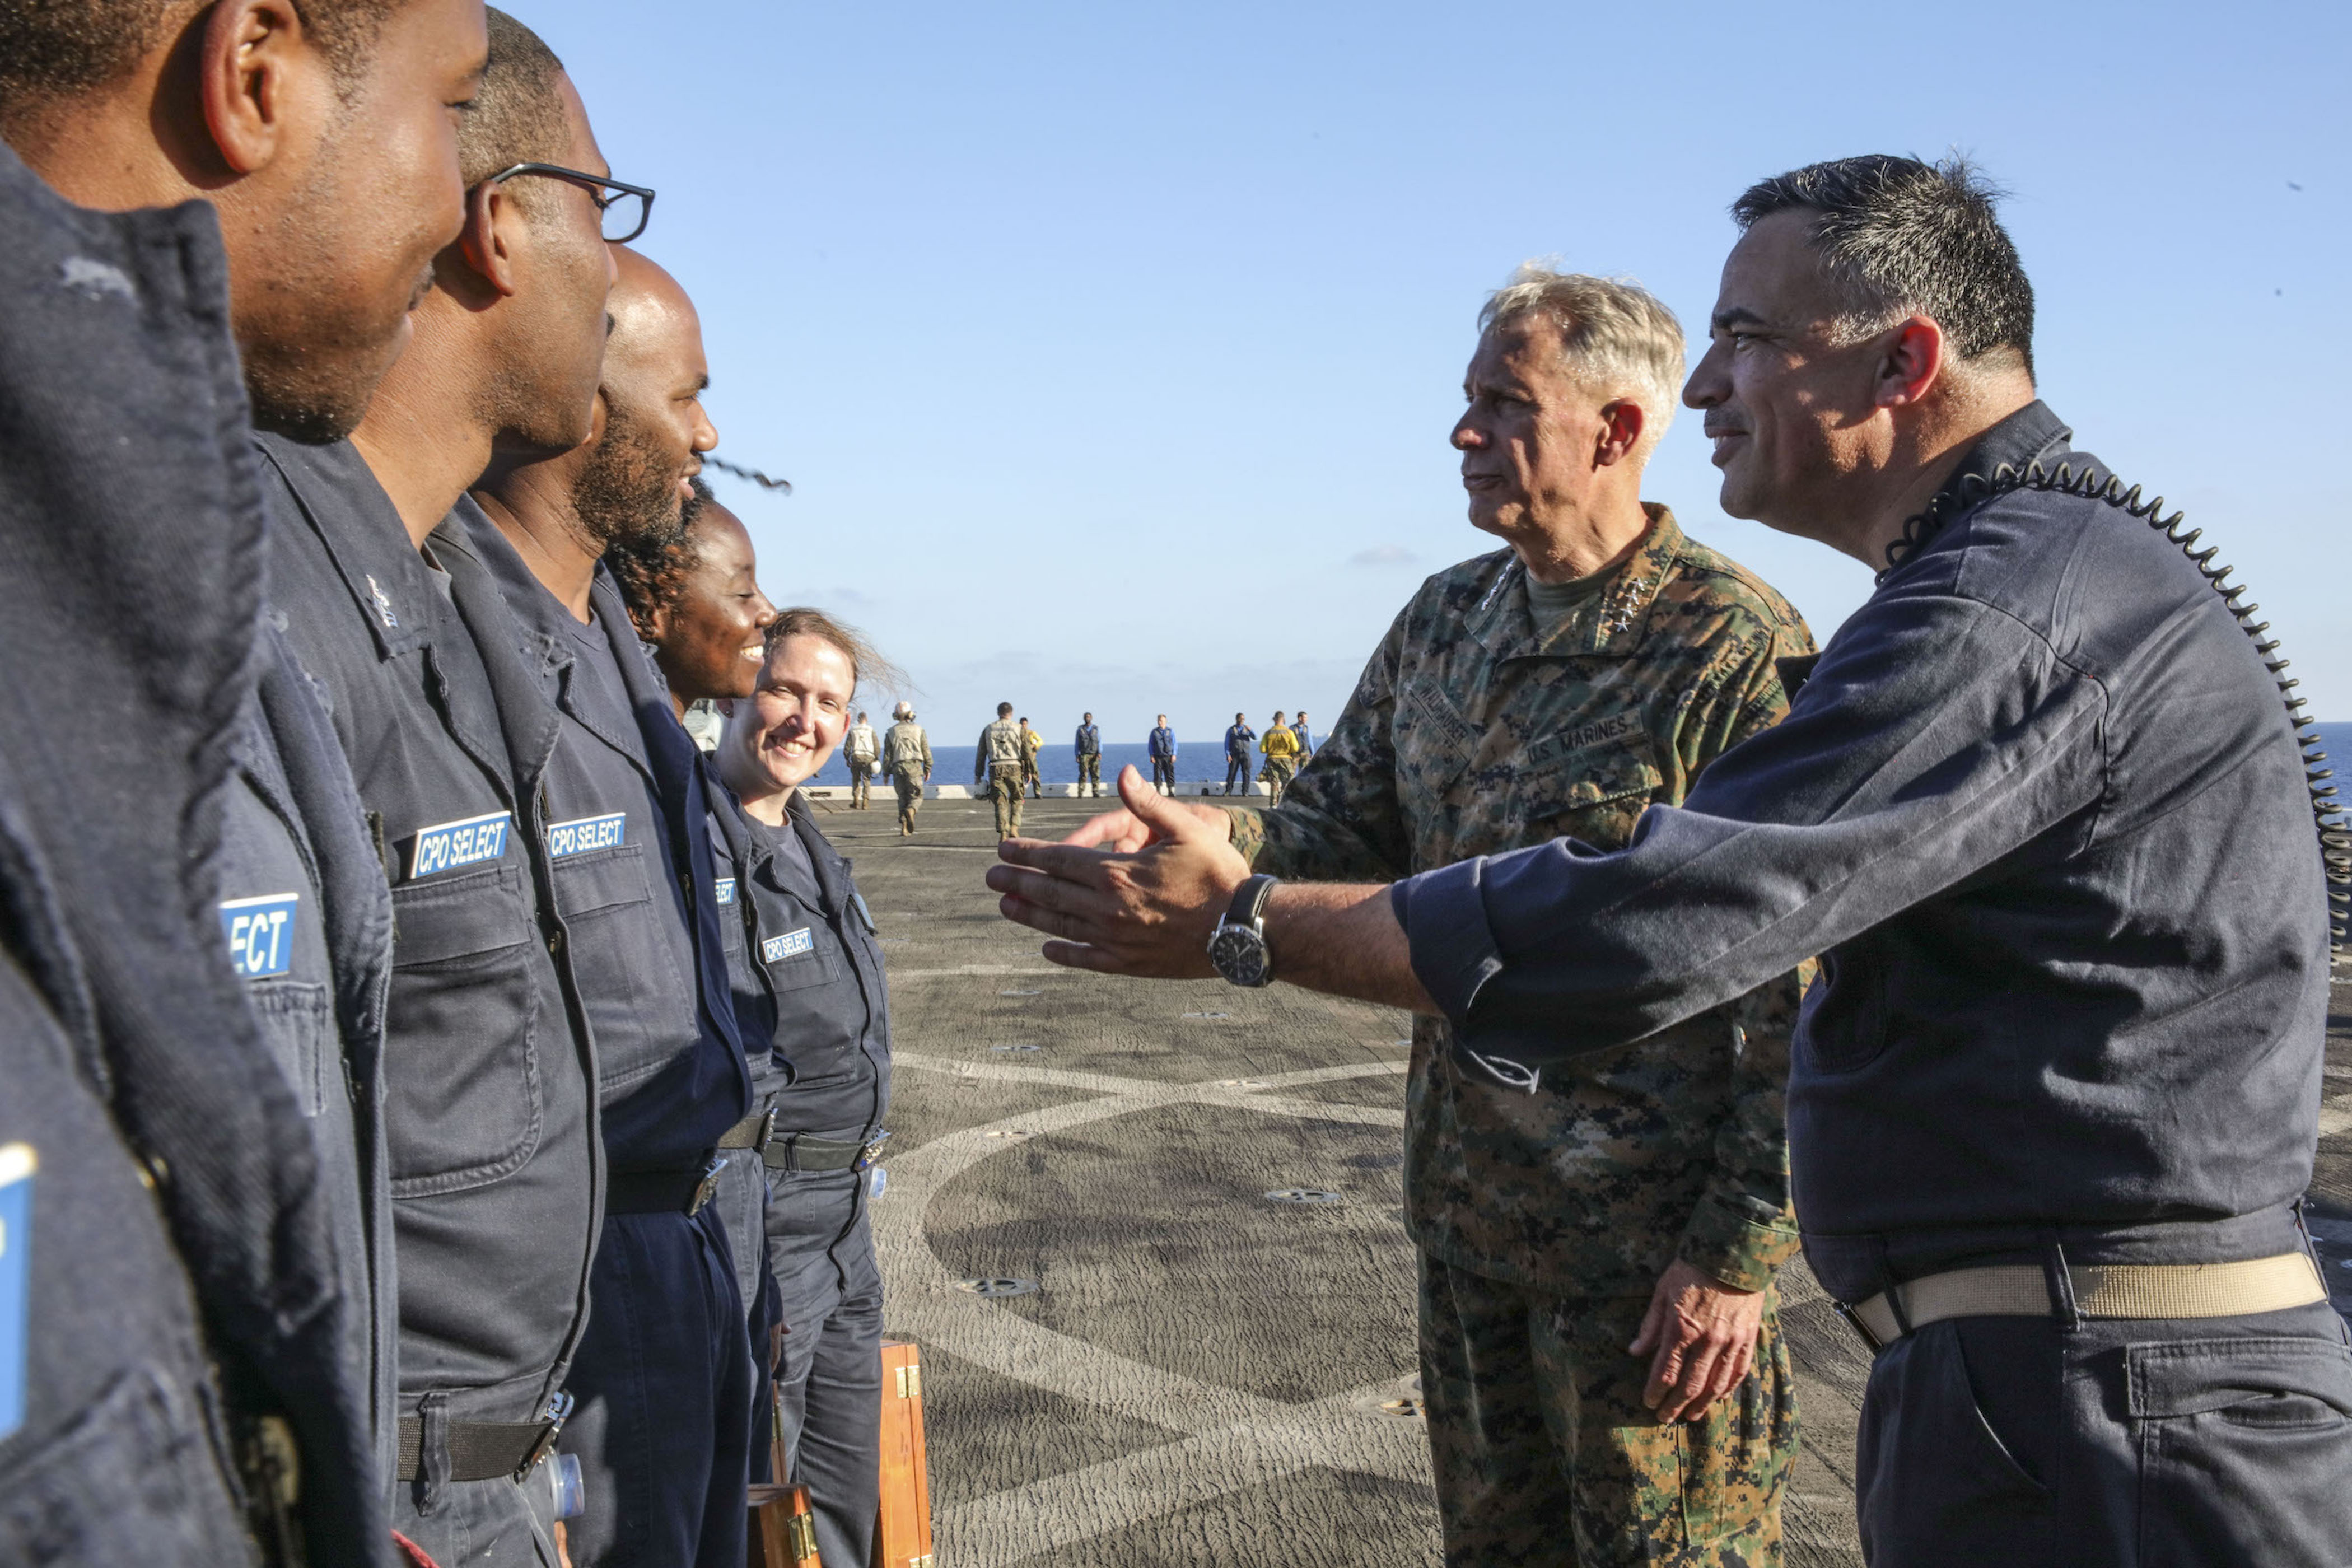 MEDITERRANEAN SEA (Sept. 6, 2017) U.S. Marine Gen. Thomas D. Waldhauser, commander, U.S. Africa Command, and Command Master Chief Michael Mashburn, address chief petty officer selectees aboard the San Antonio-class amphibious transport dock ship USS Mesa Verde (LPD 19) Sept. 6, 2017. The ship is deployed with the Bataan Amphibious Ready Group and 24th Marine Expeditionary Unit to support maritime security operations and theater security cooperation efforts in the U.S. 6th Fleet area of operations. (U.S. Navy photo by Mass Communication Specialist 2nd Class Brent Pyfrom/Released)